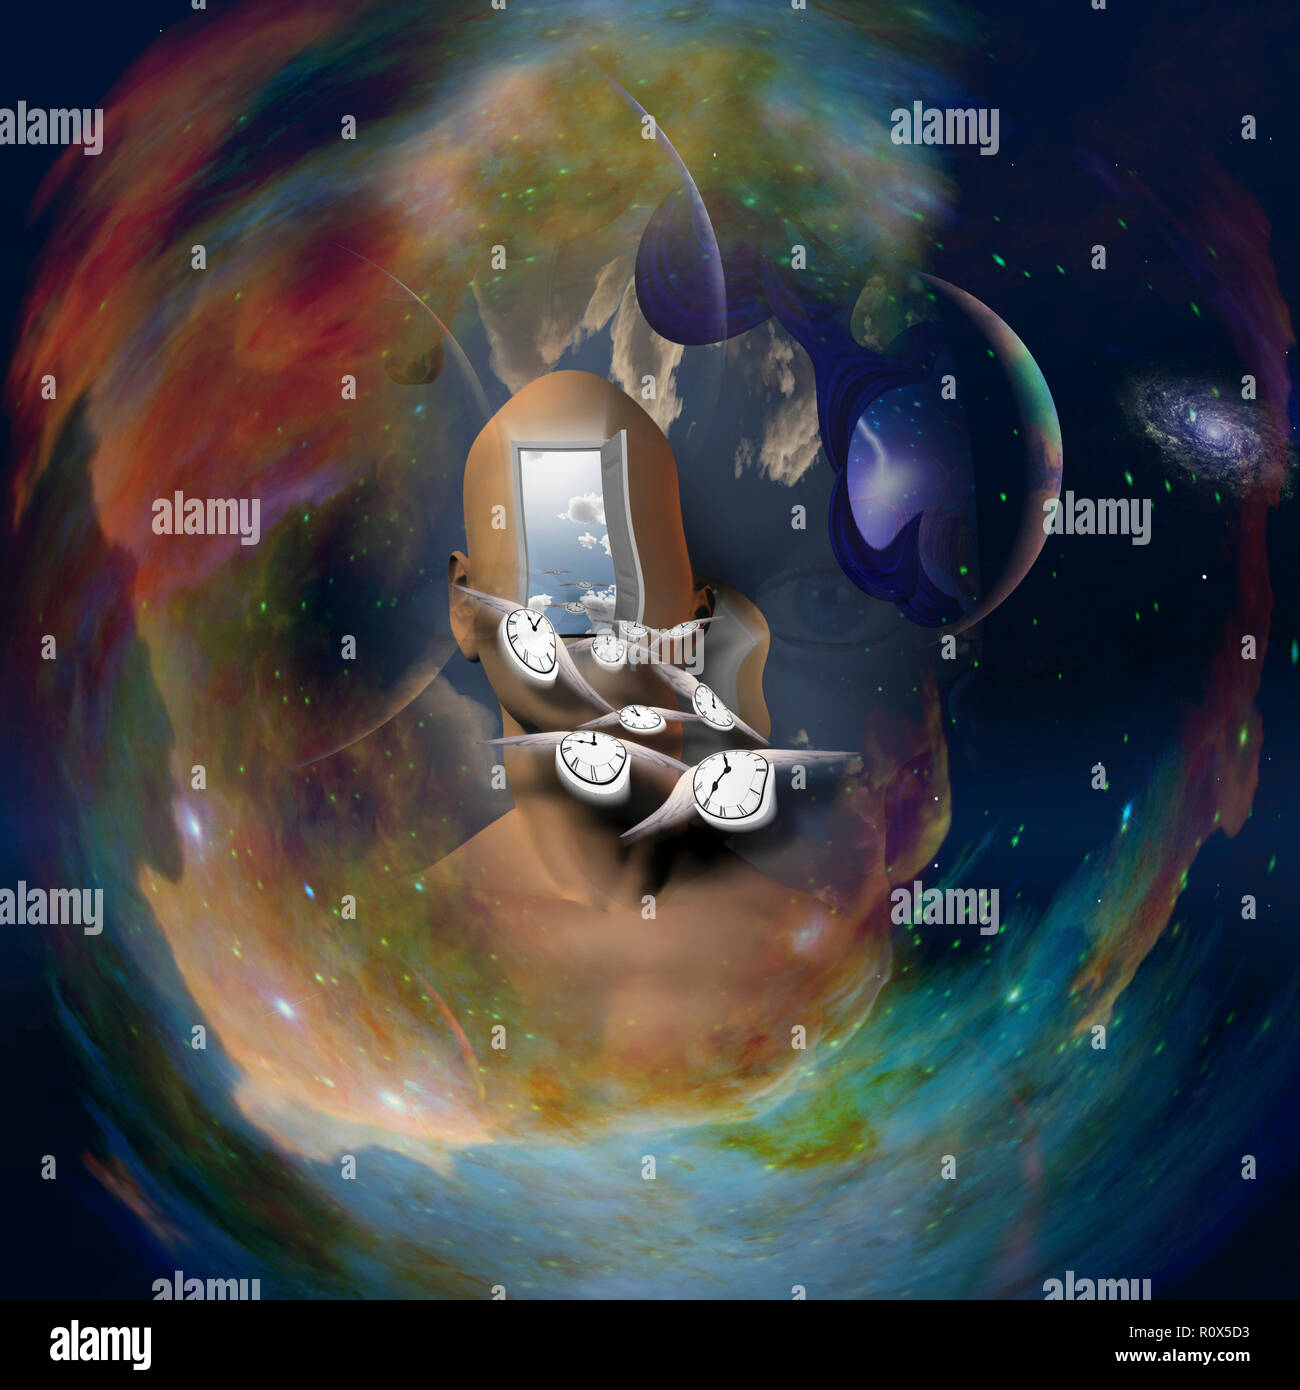 Man's head with open door to another world. Deep space background. Winged clocks represents flow of time - Stock Image